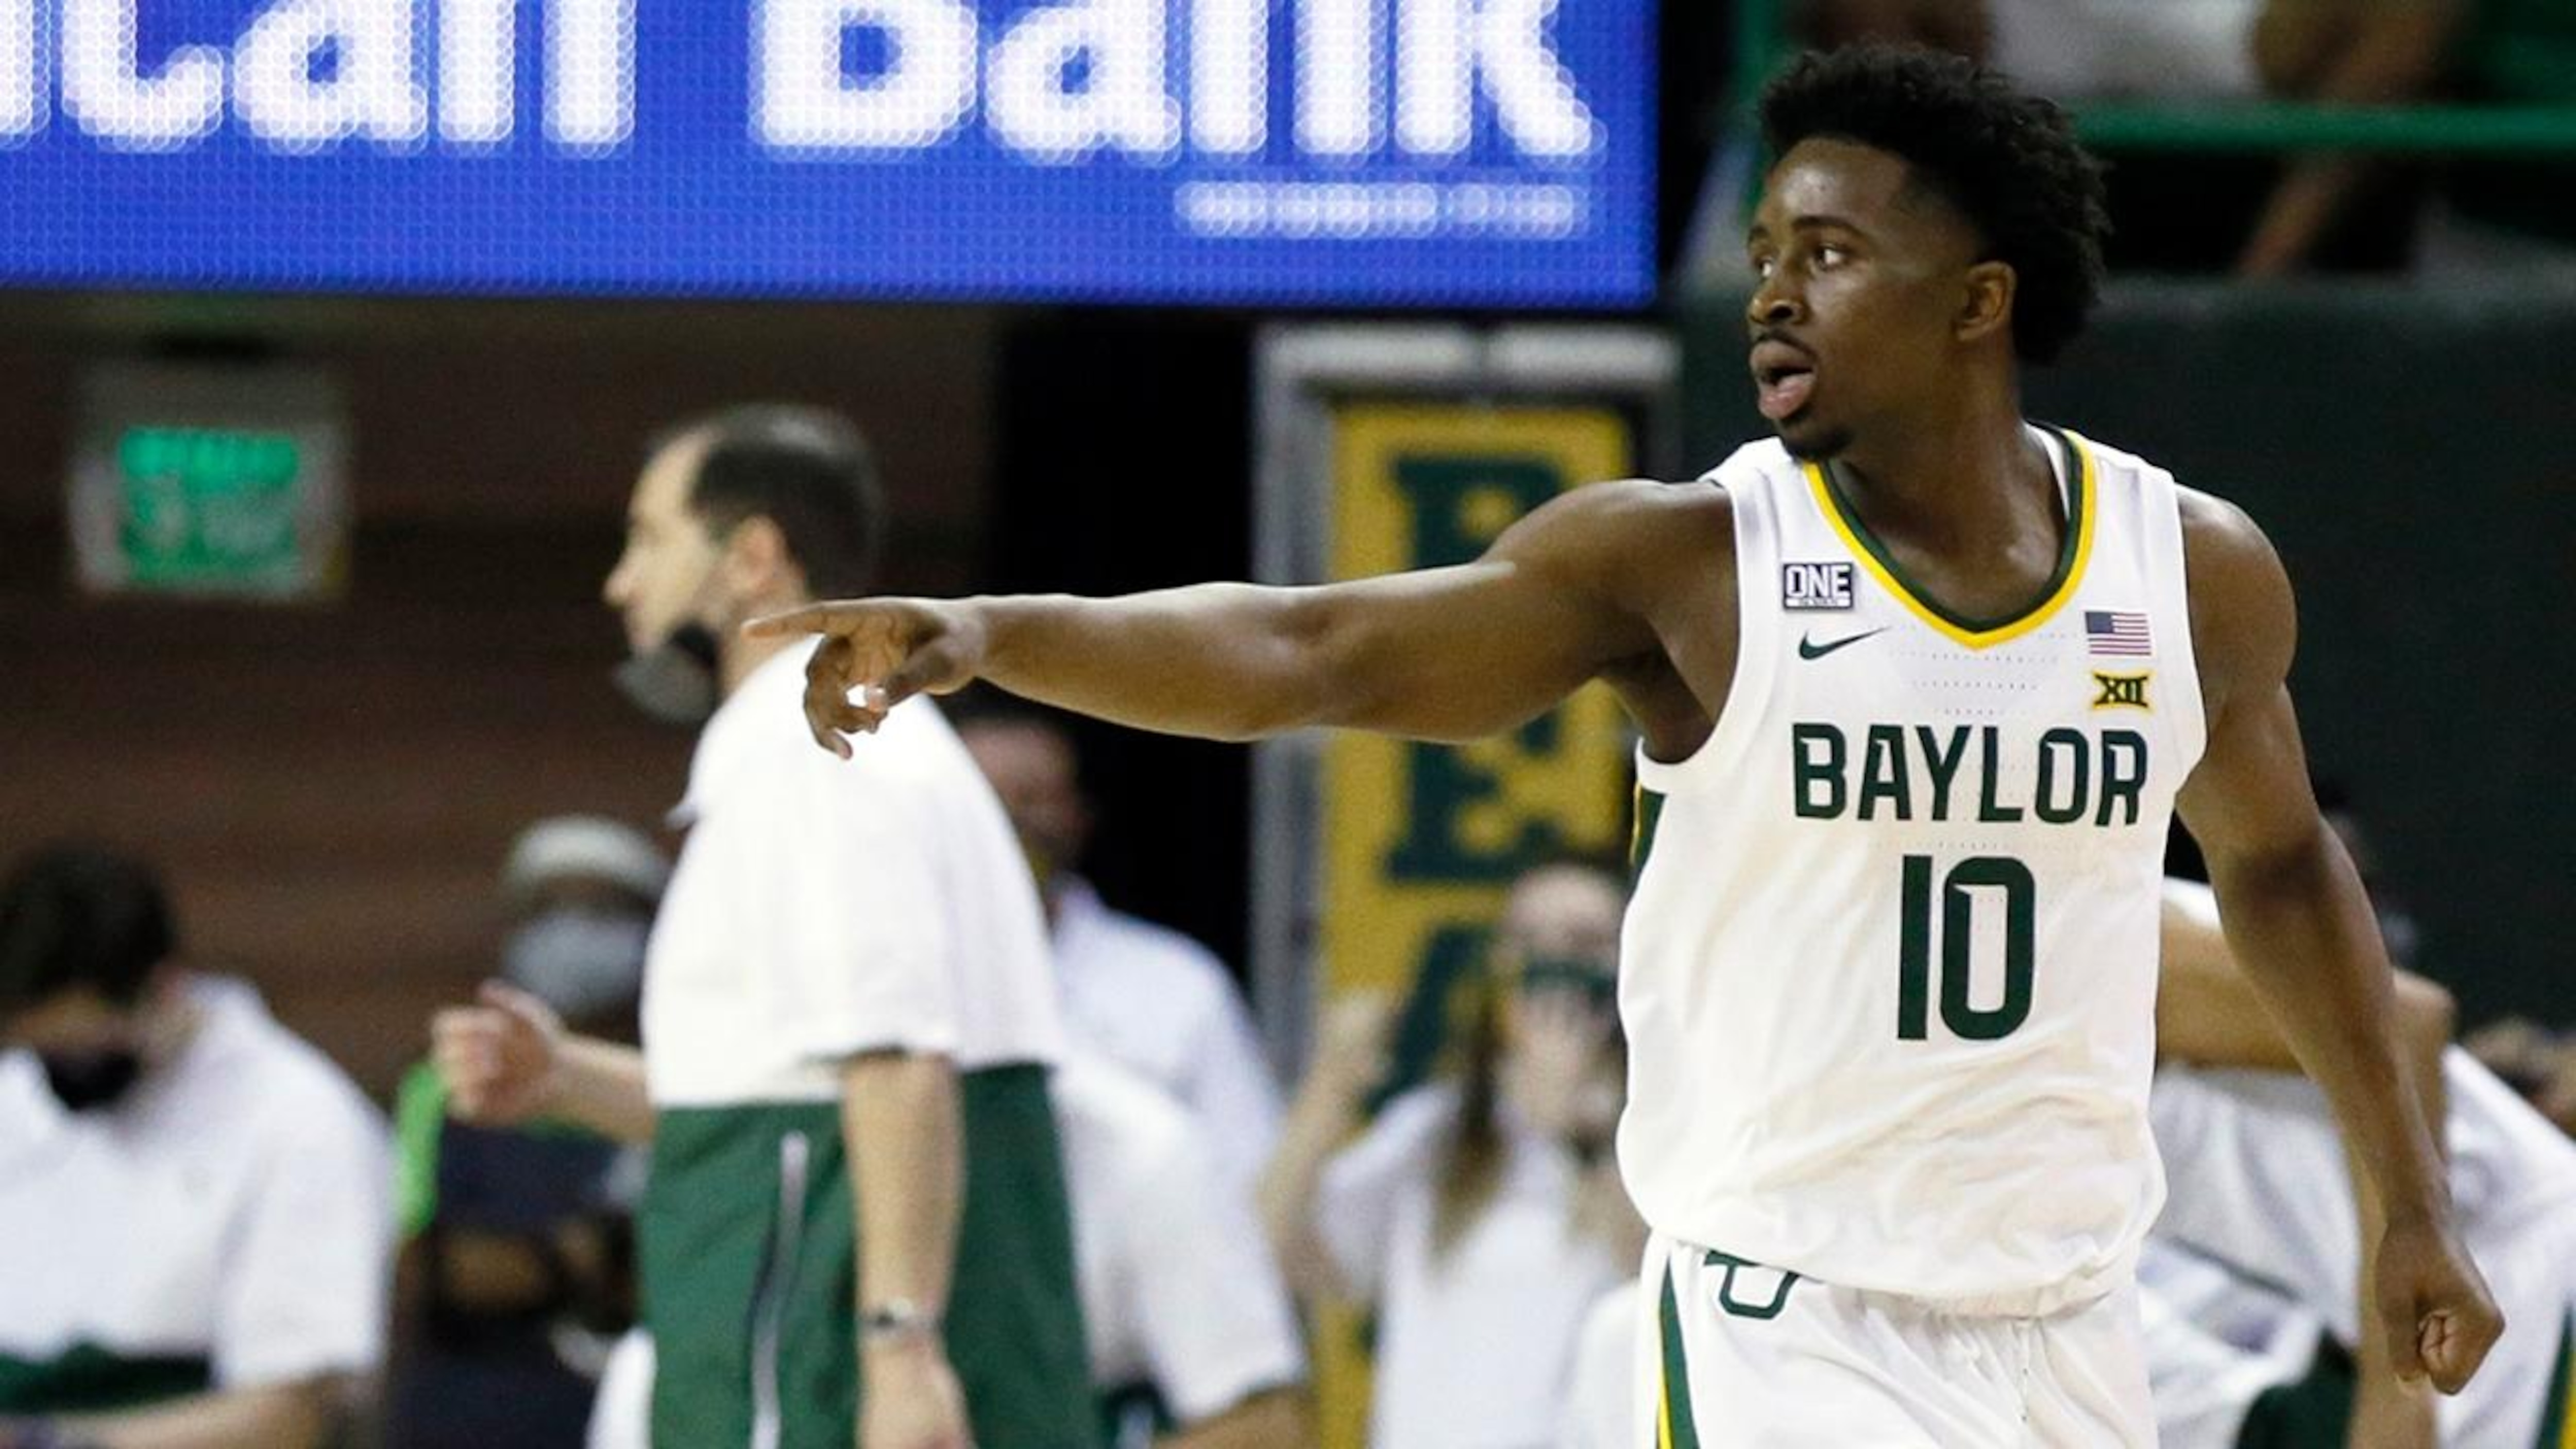 Baylor at Kansas and 14 more college hoops games picked this week